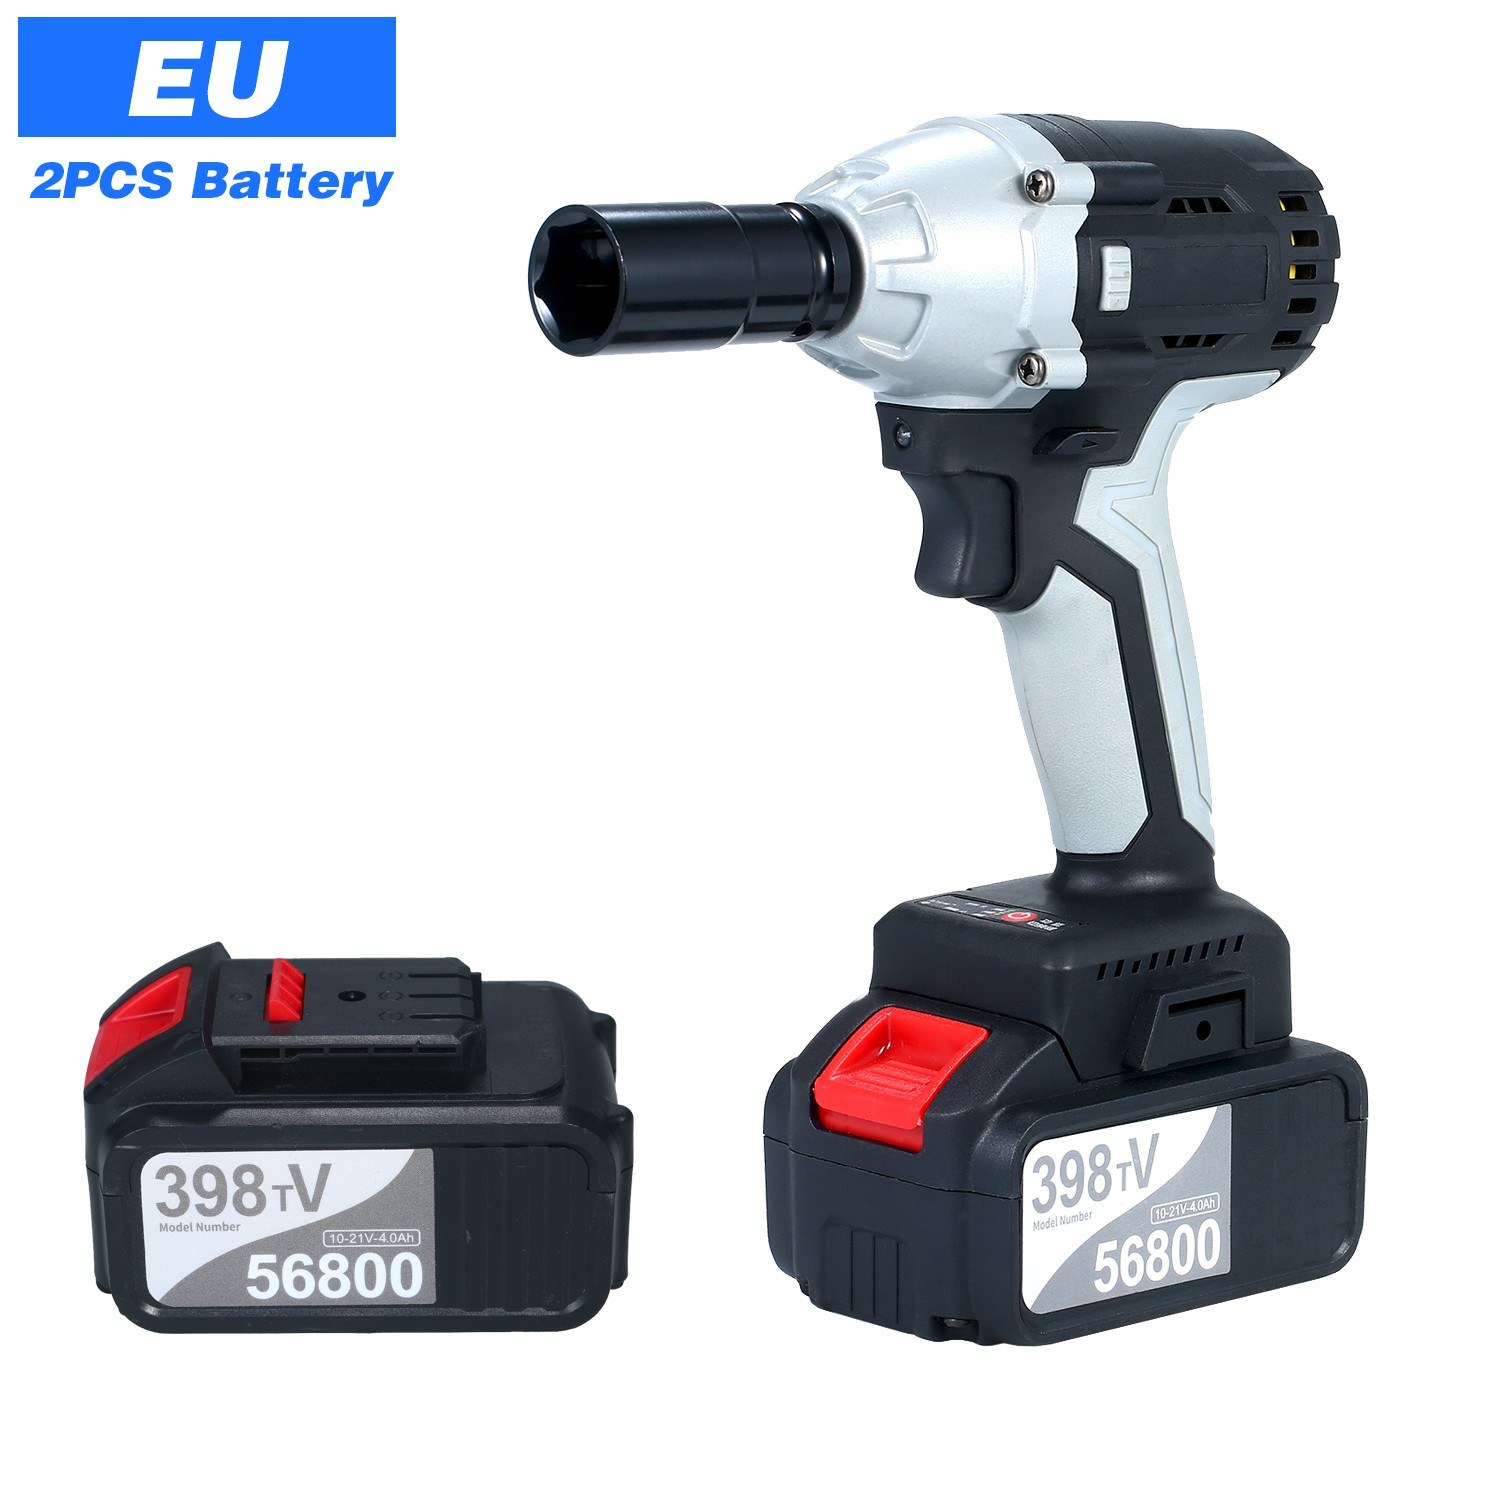 Tomtop - [EU Clearance Sale] 49% OFF Brushless Impact Wrench Cordless Electric Impact Wrench, $69.99 (Inclusive of VAT)